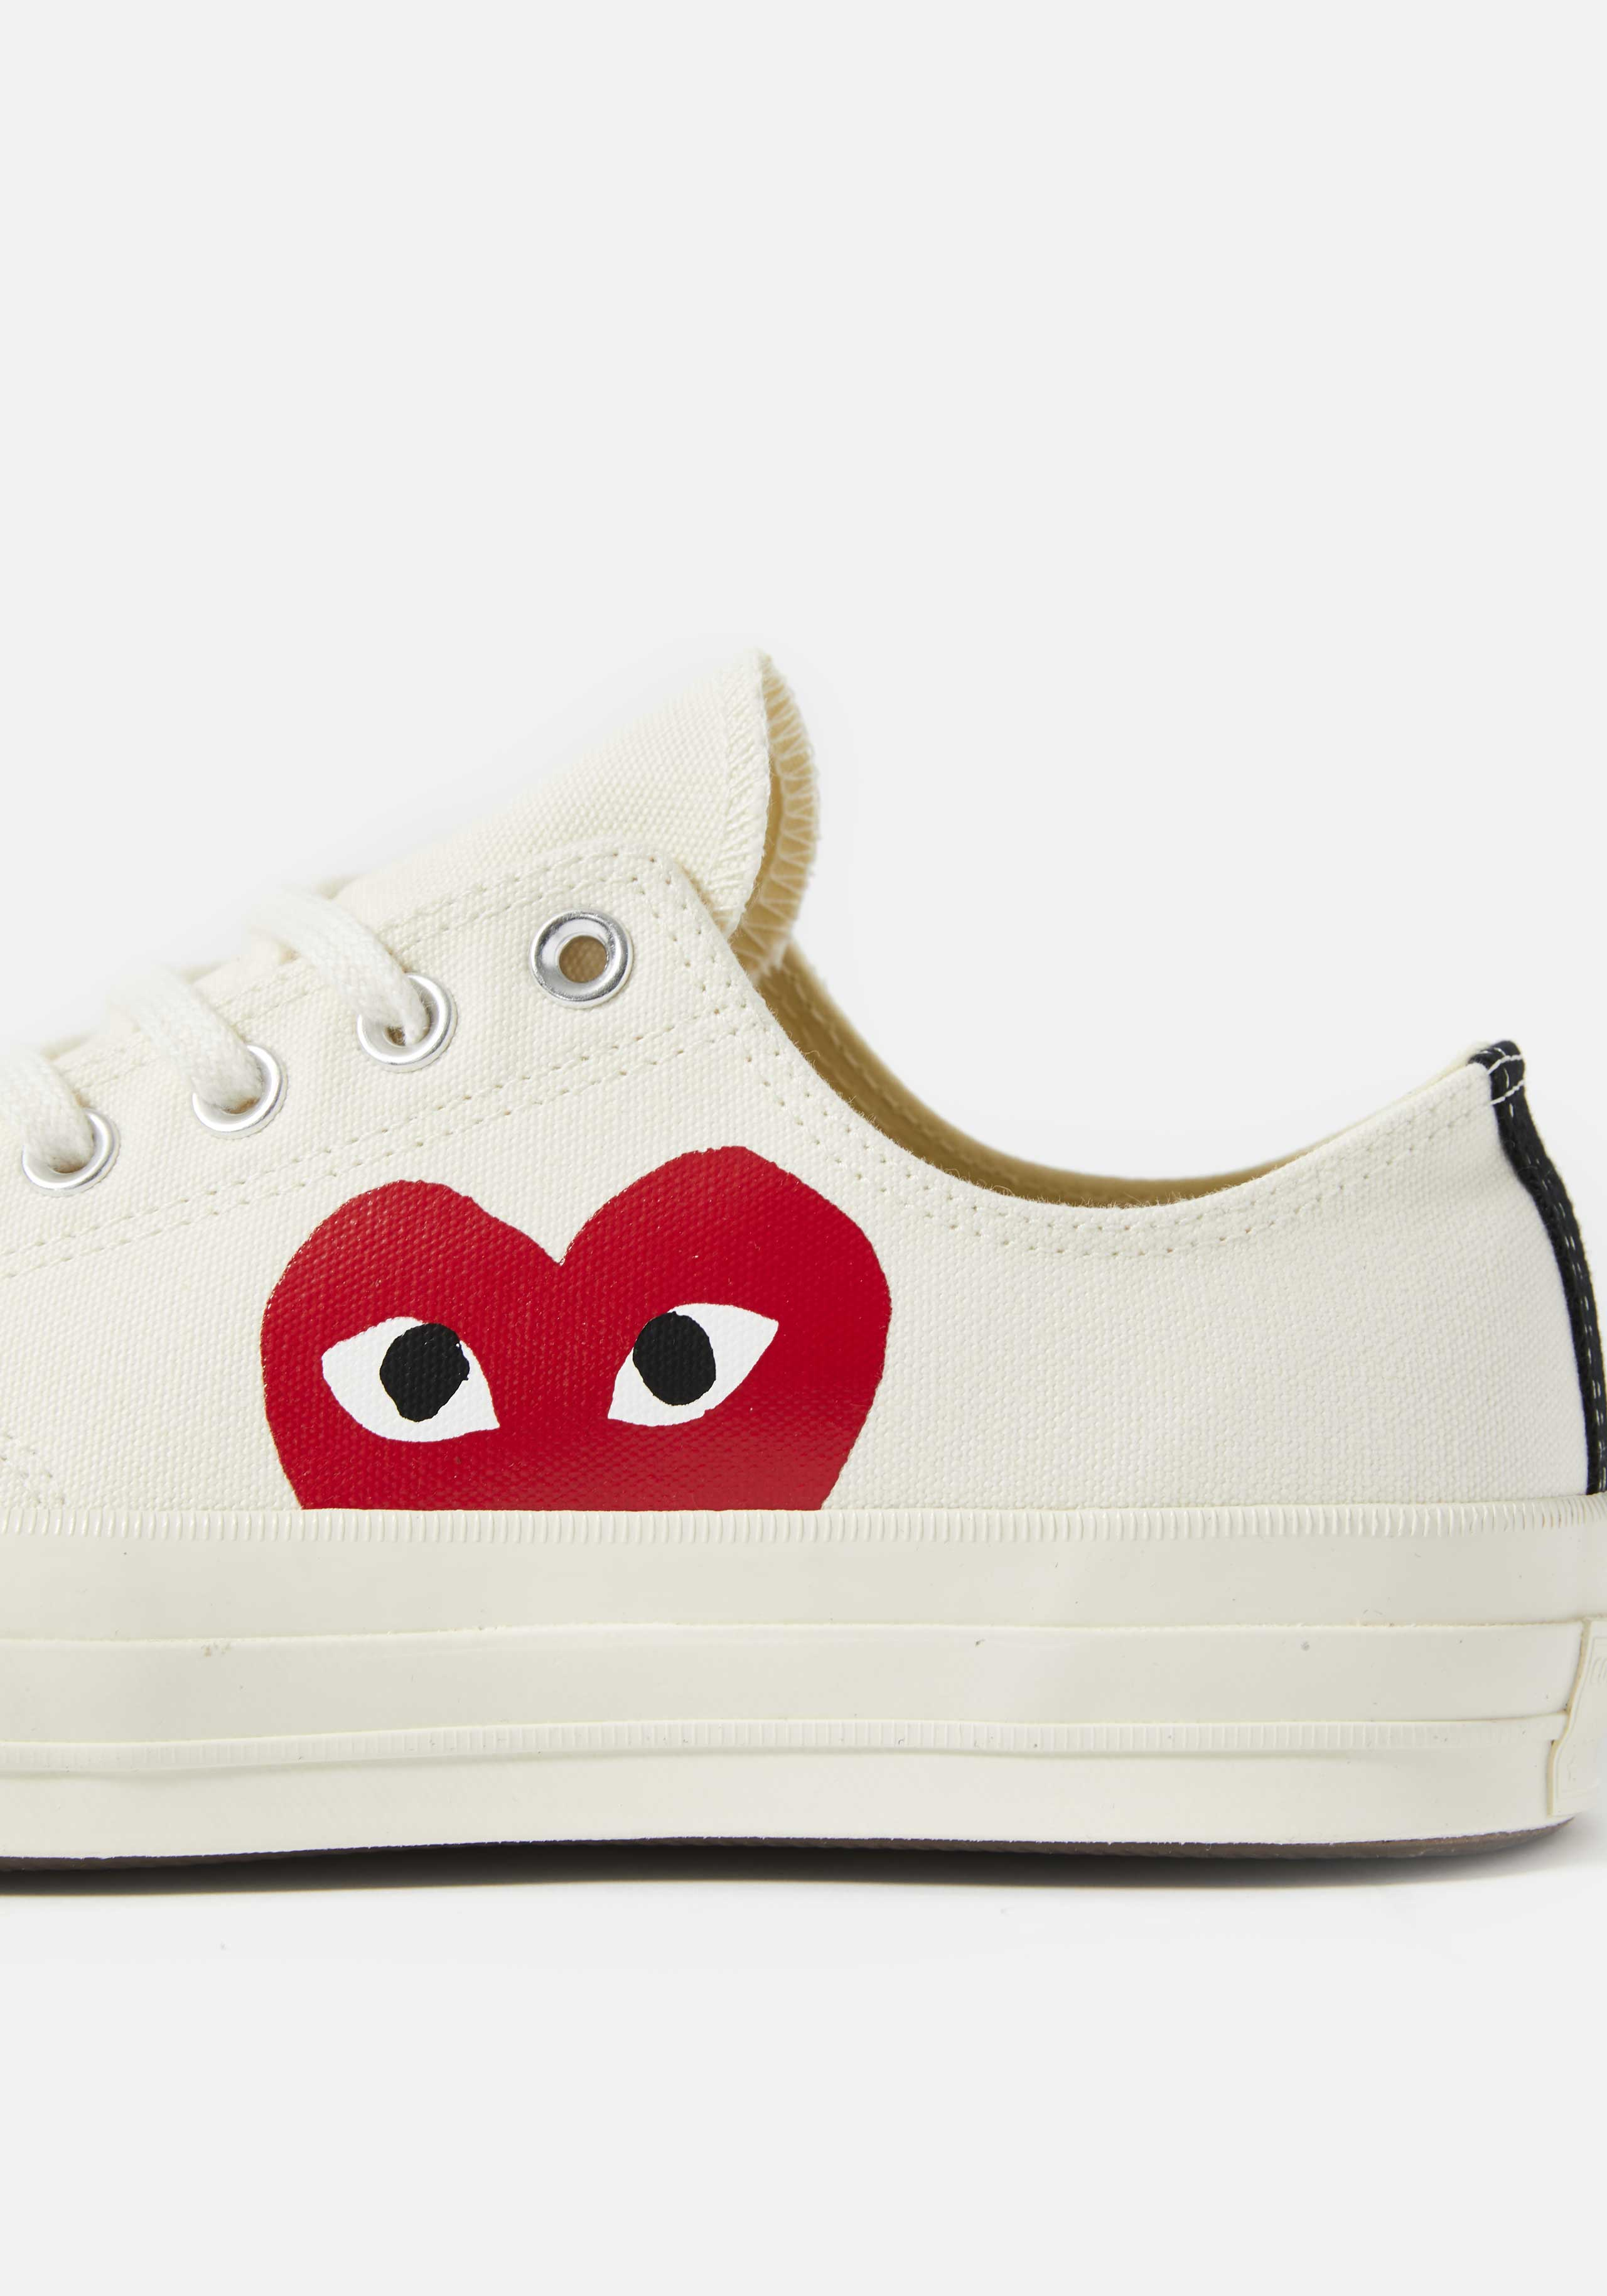 cdg play converse red heart 70s low 4